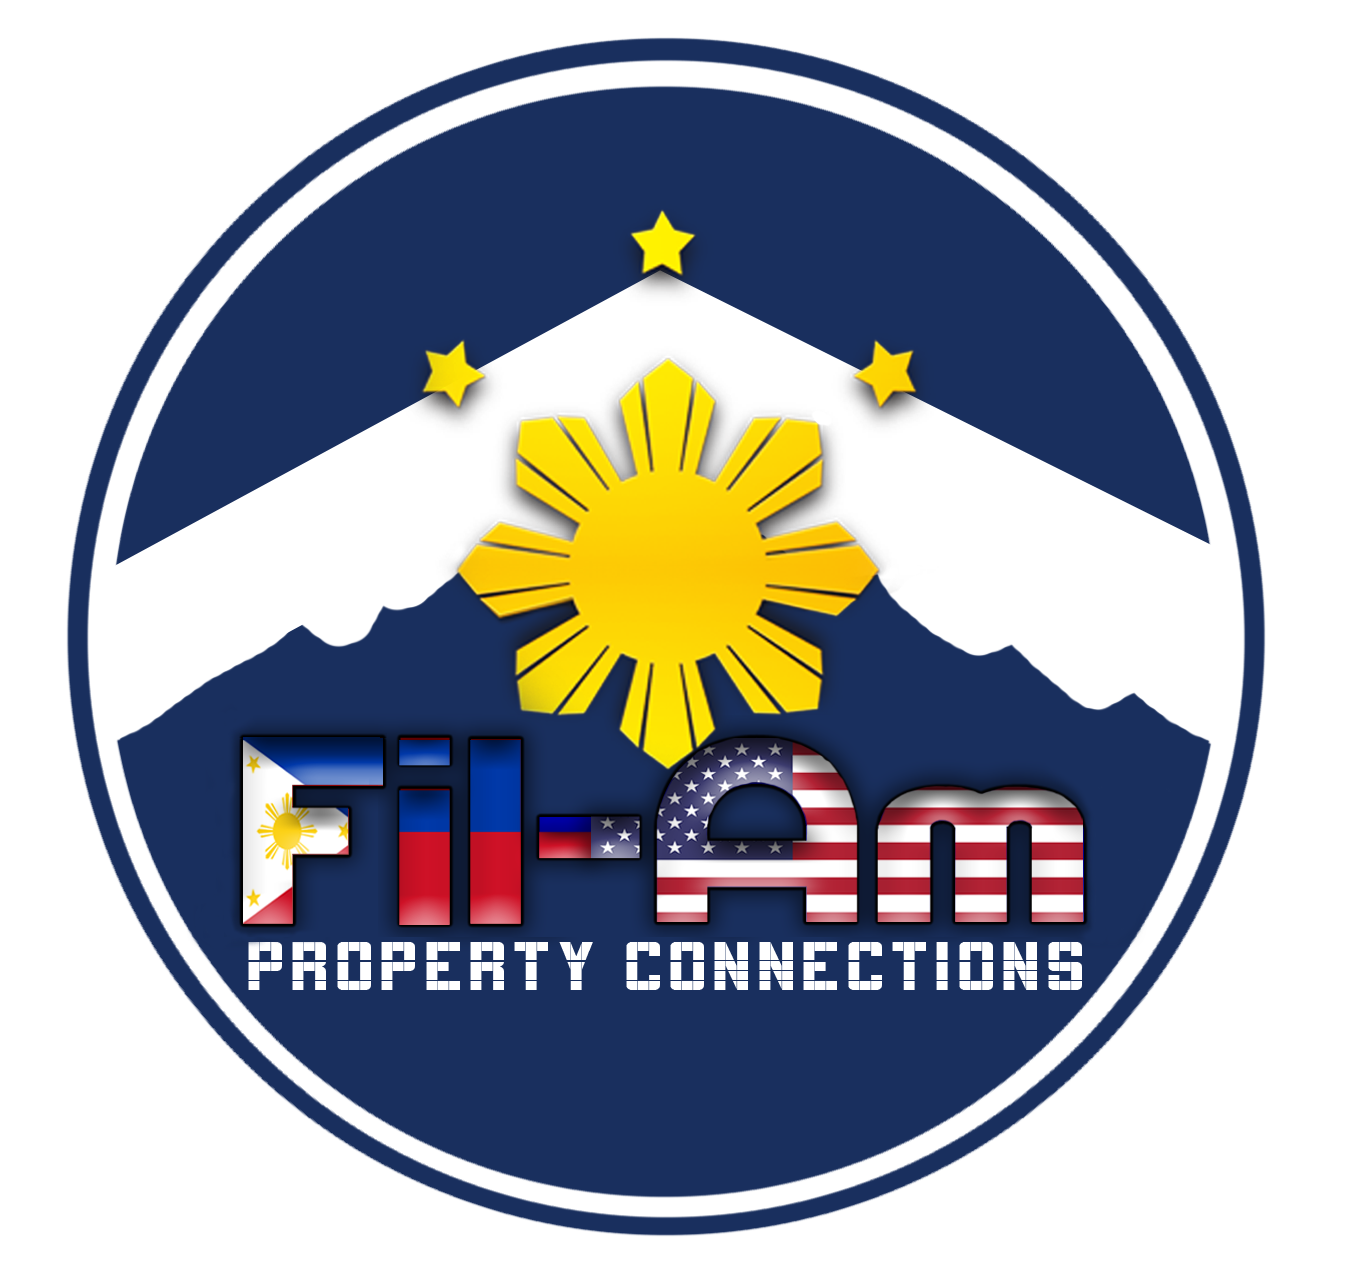 Fil-Am Property Connections